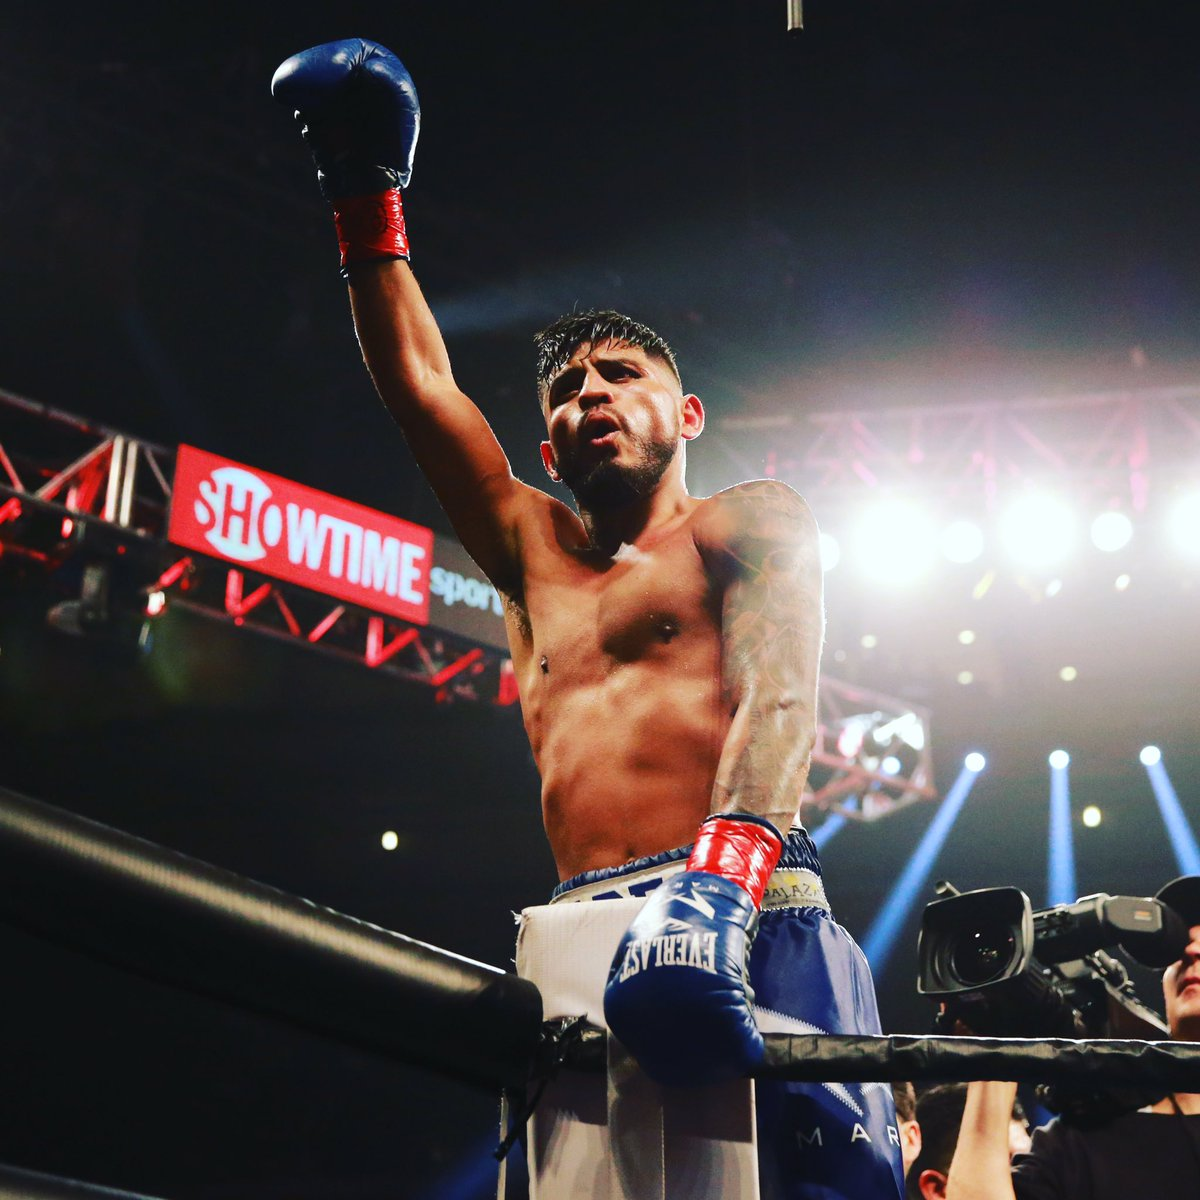 #AndTheNew #4xWorldChamp Thank you to #TeamMares and all who supported me. Ready for whoever is next.